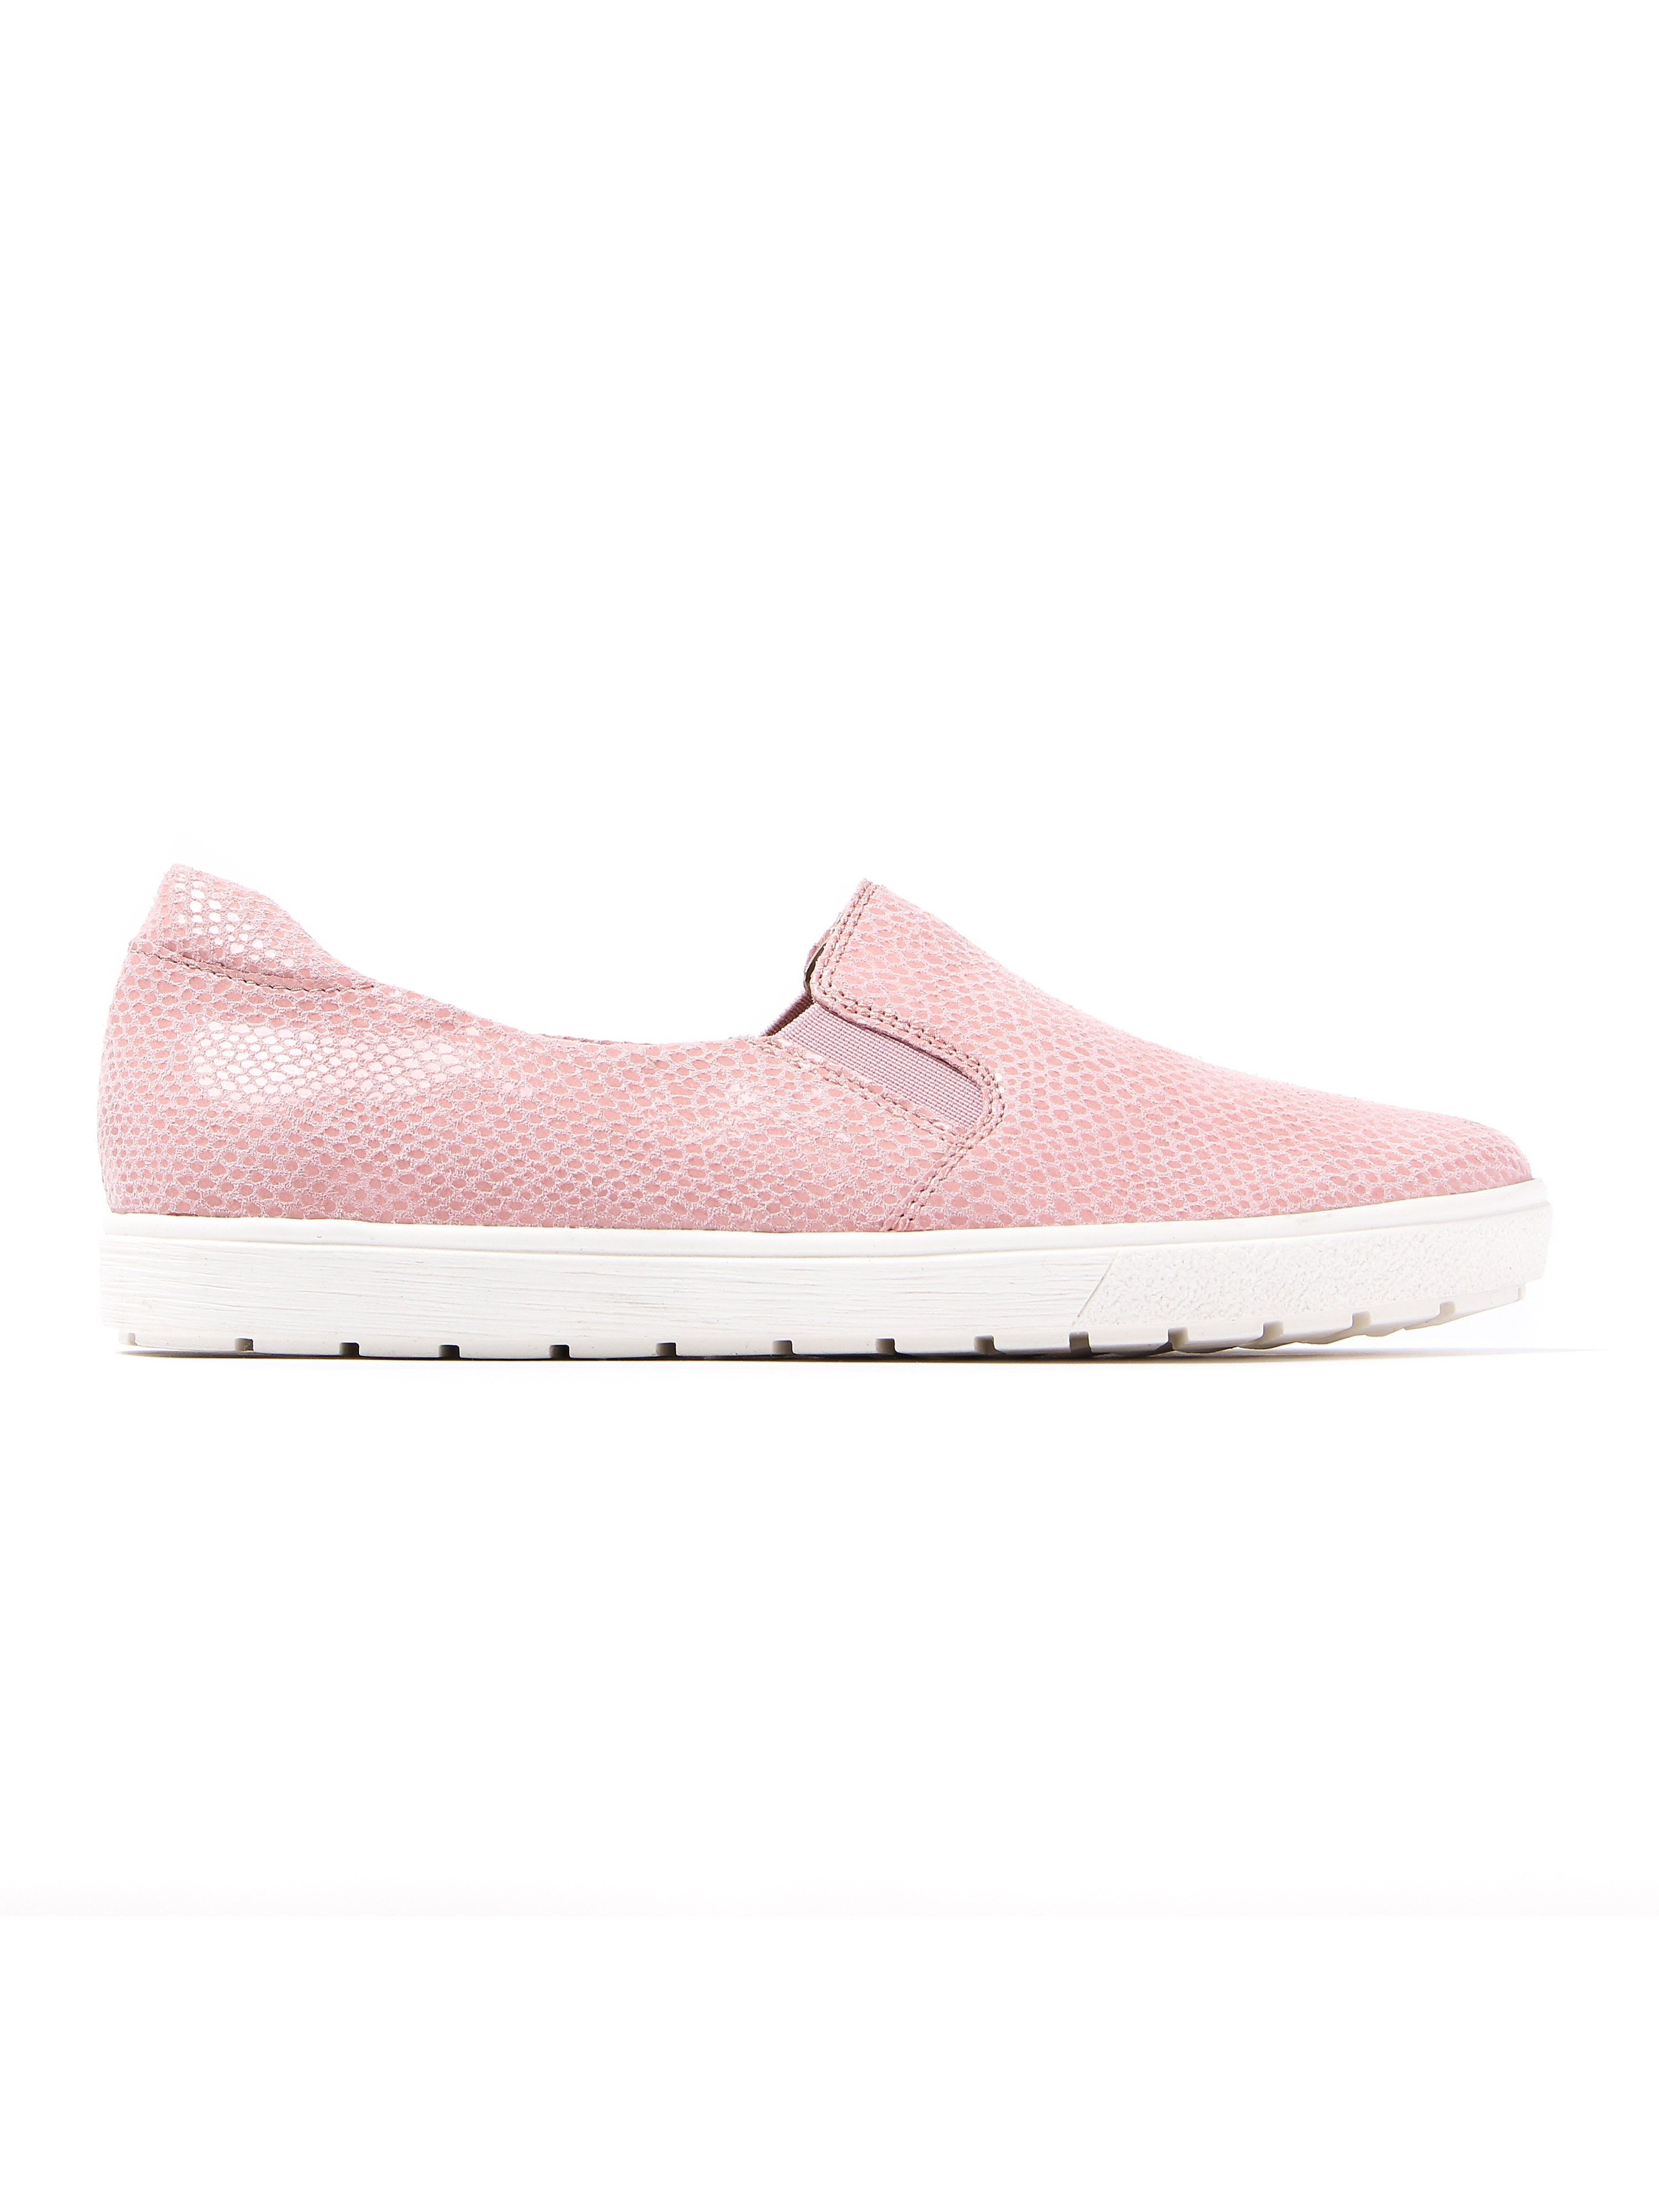 Caprice Women's Snake Effect Leather Slip-on Trainers - Rose Reptile